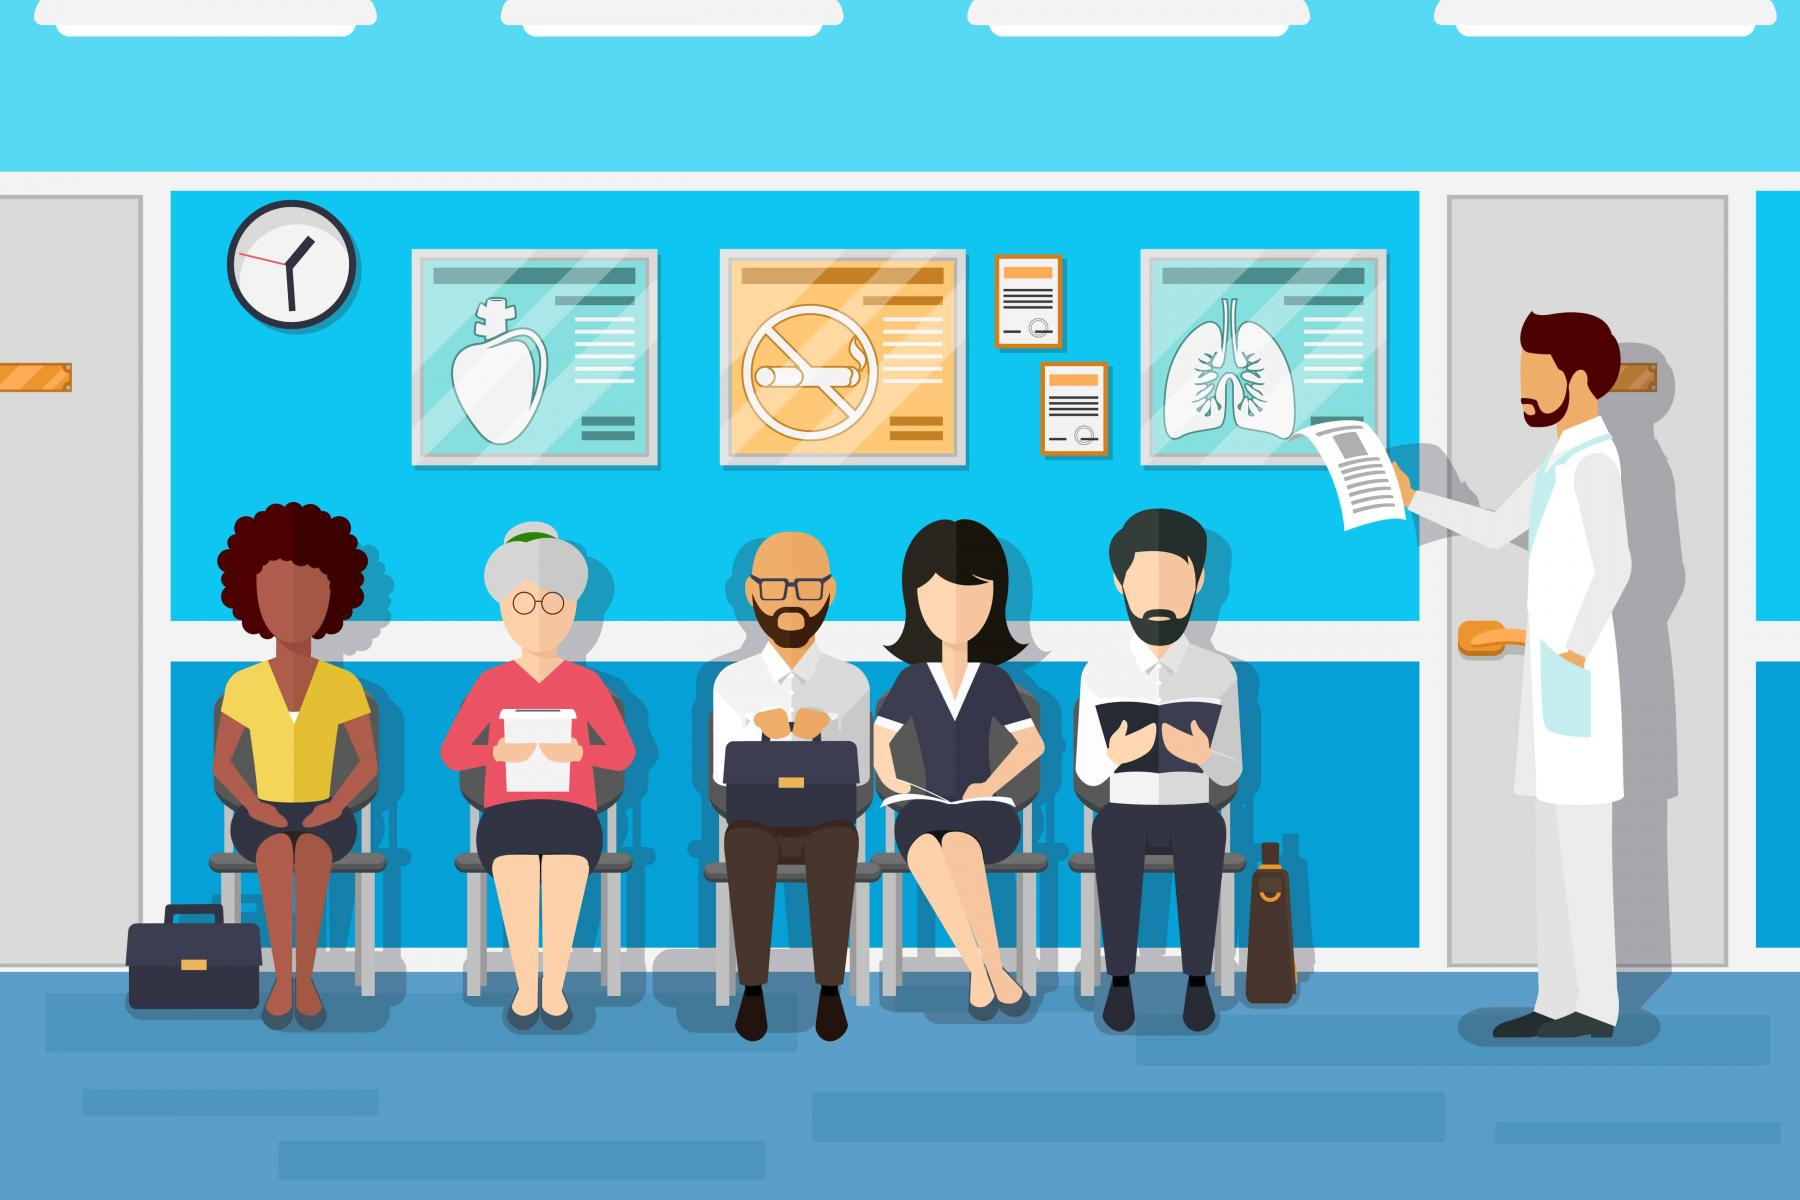 Ready to take action? Outpatient services in the NHS Long Term Plan